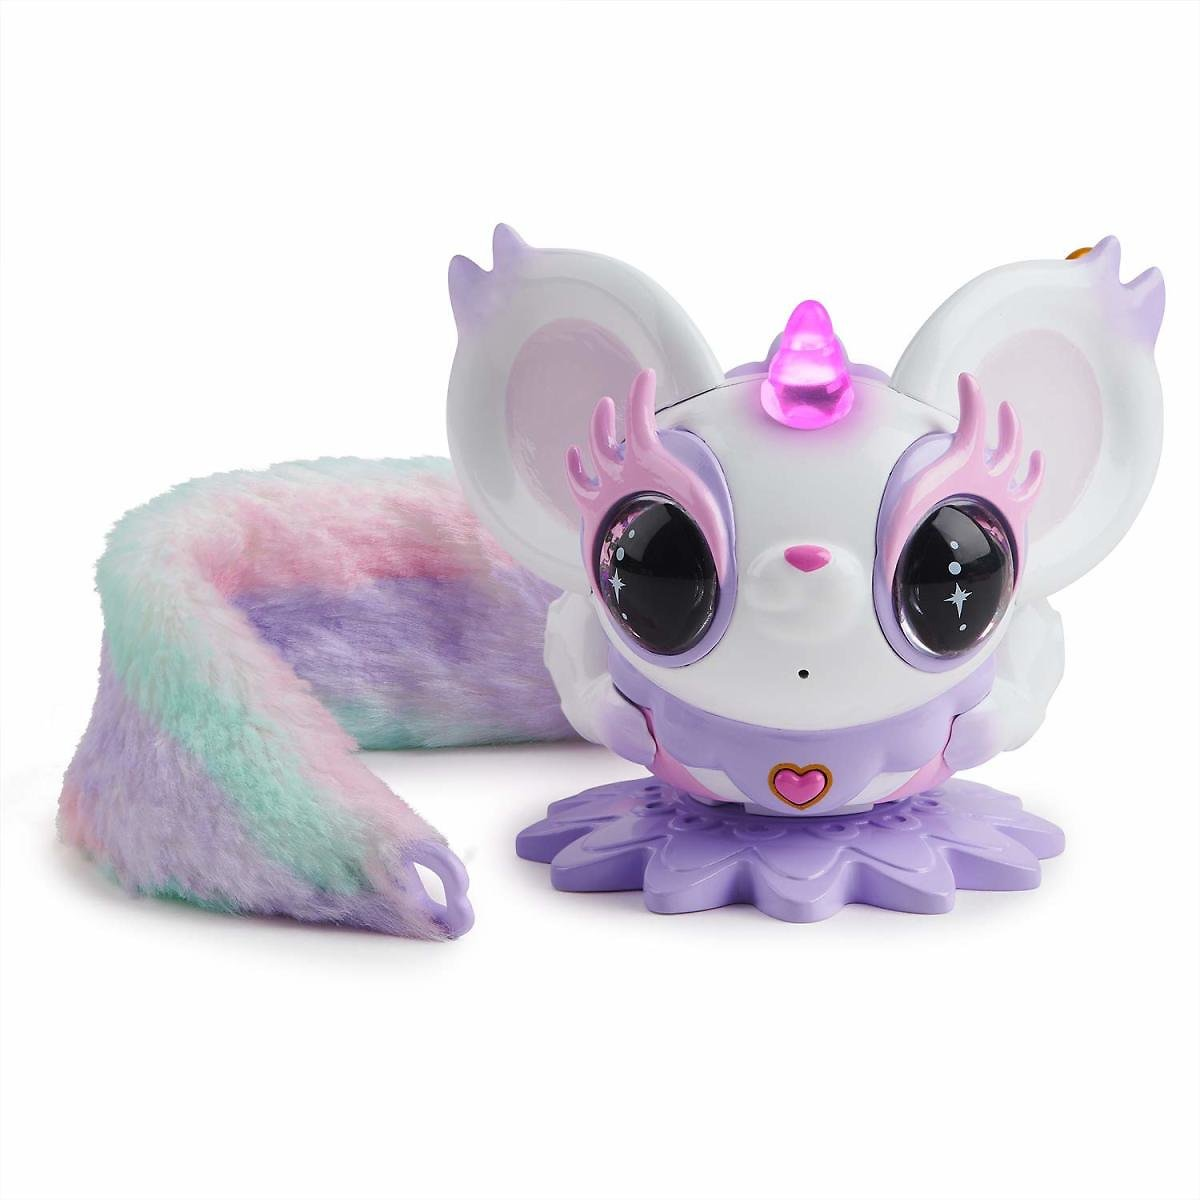 WowWee Pixie Belles - Esme (White) - Interactive Enchanted Animal Toy